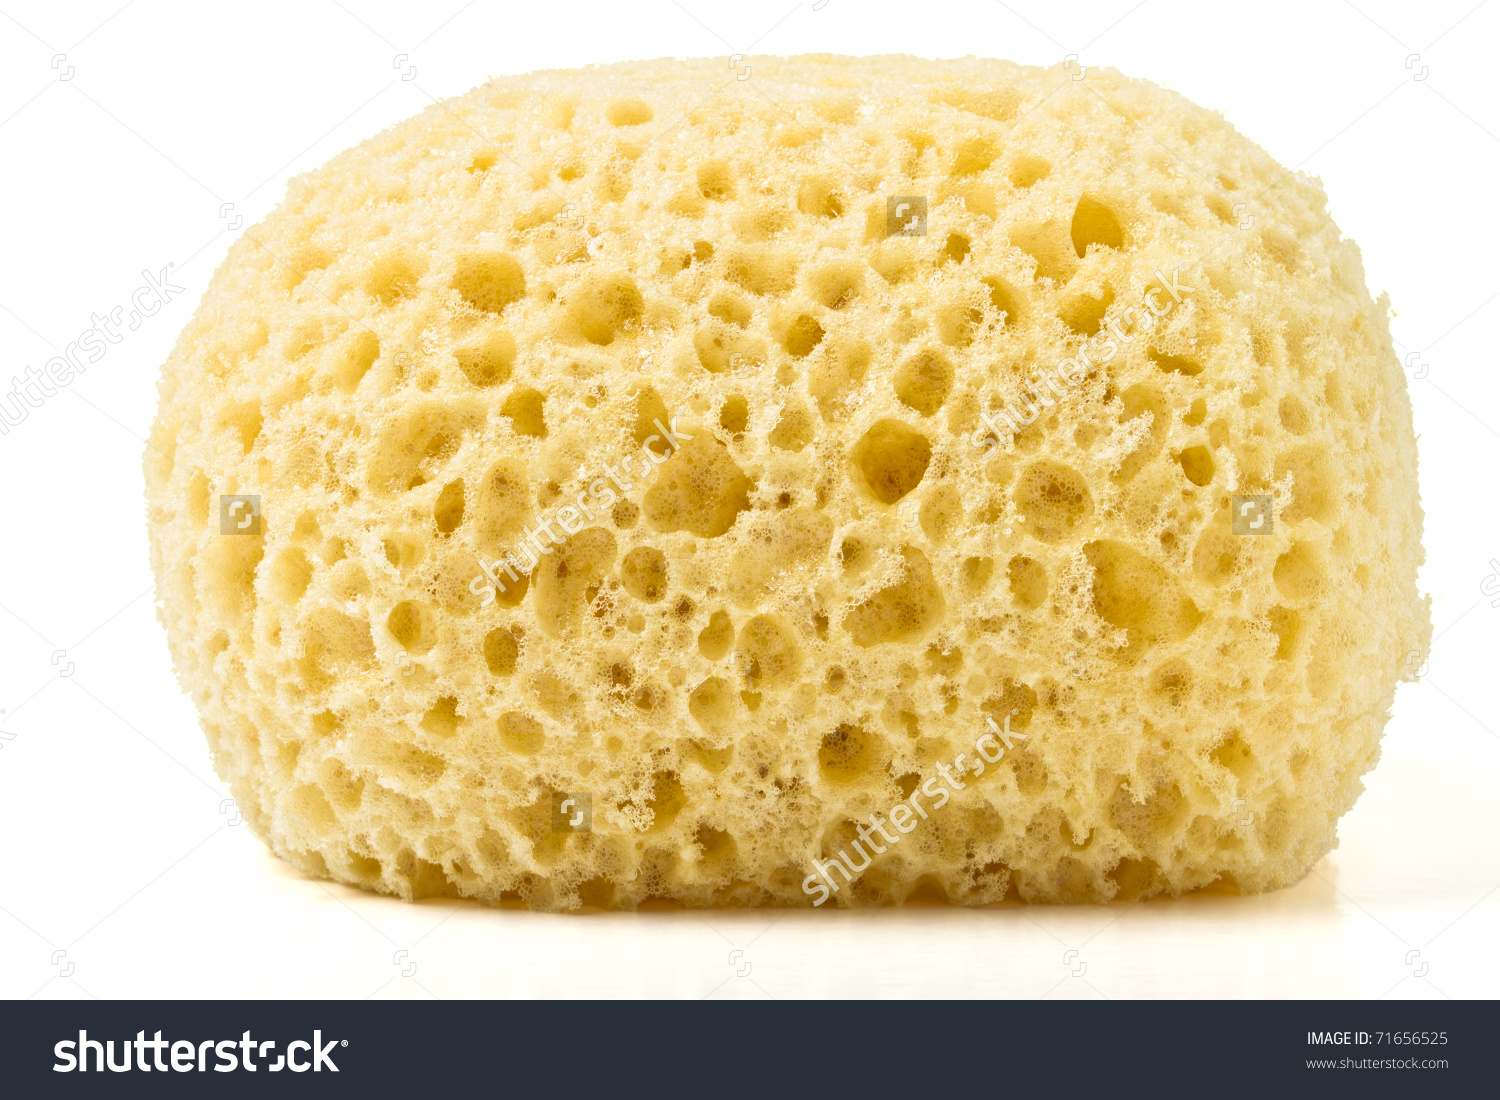 Synthetic Bath Sponge Low Perspective Isolated Stock Photo.